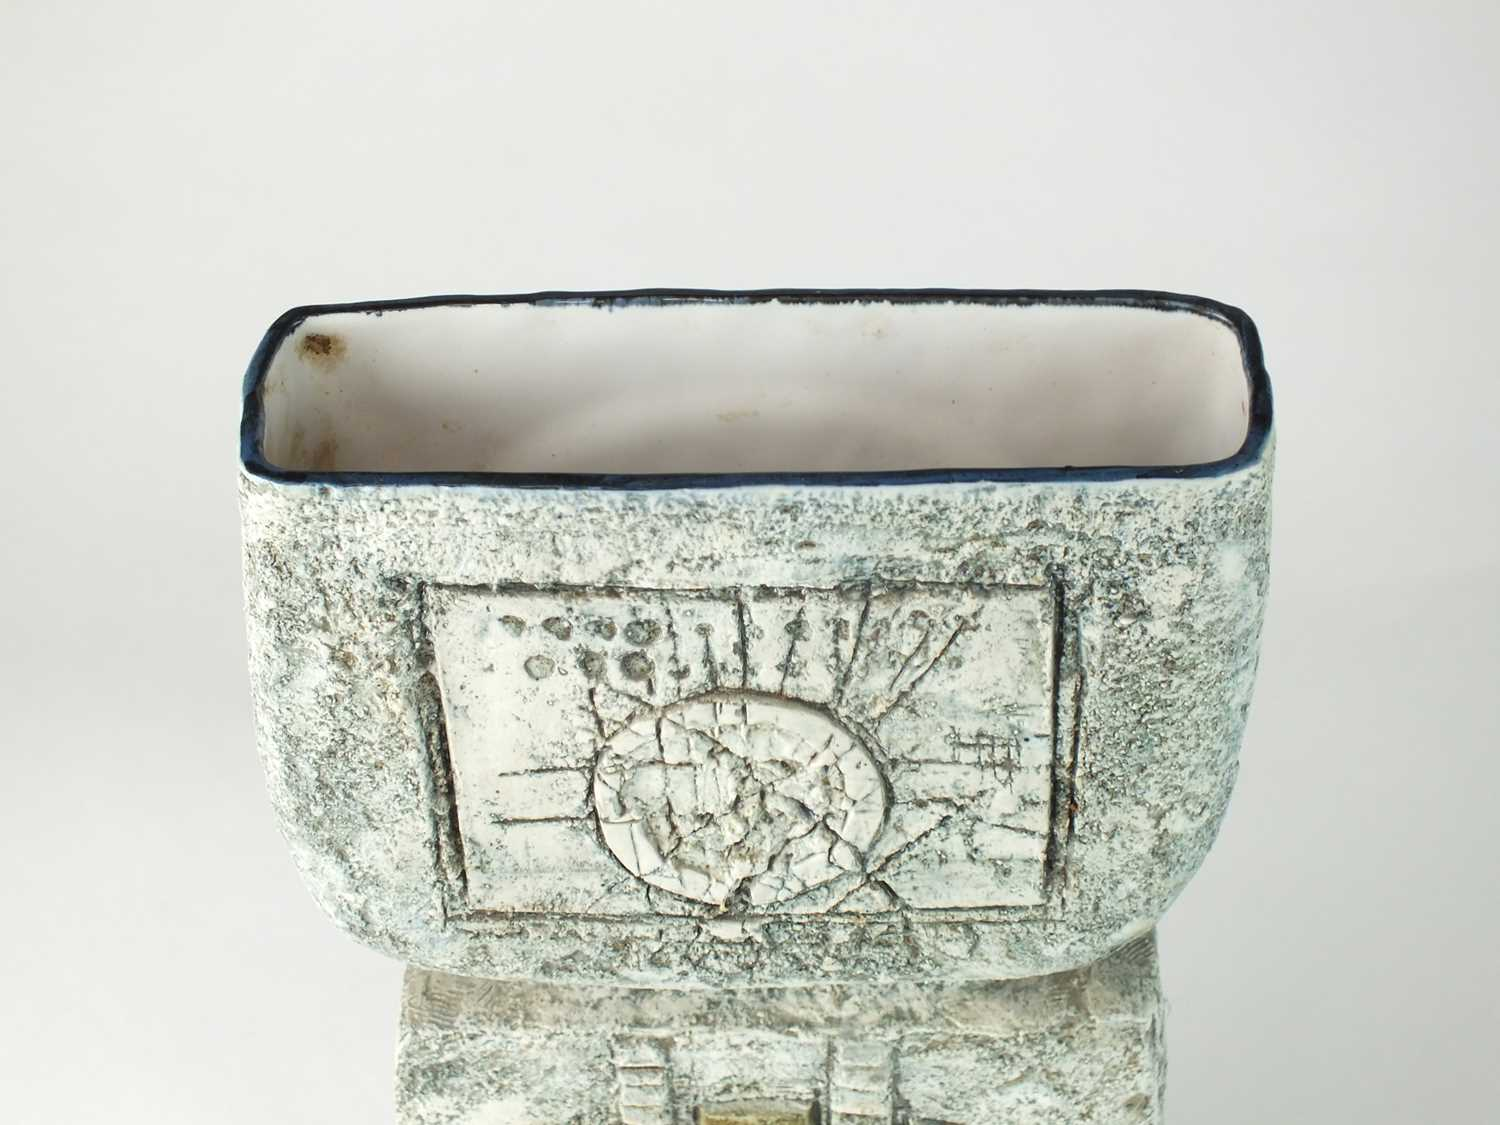 Troika vase by Anne Lewis - Image 5 of 7